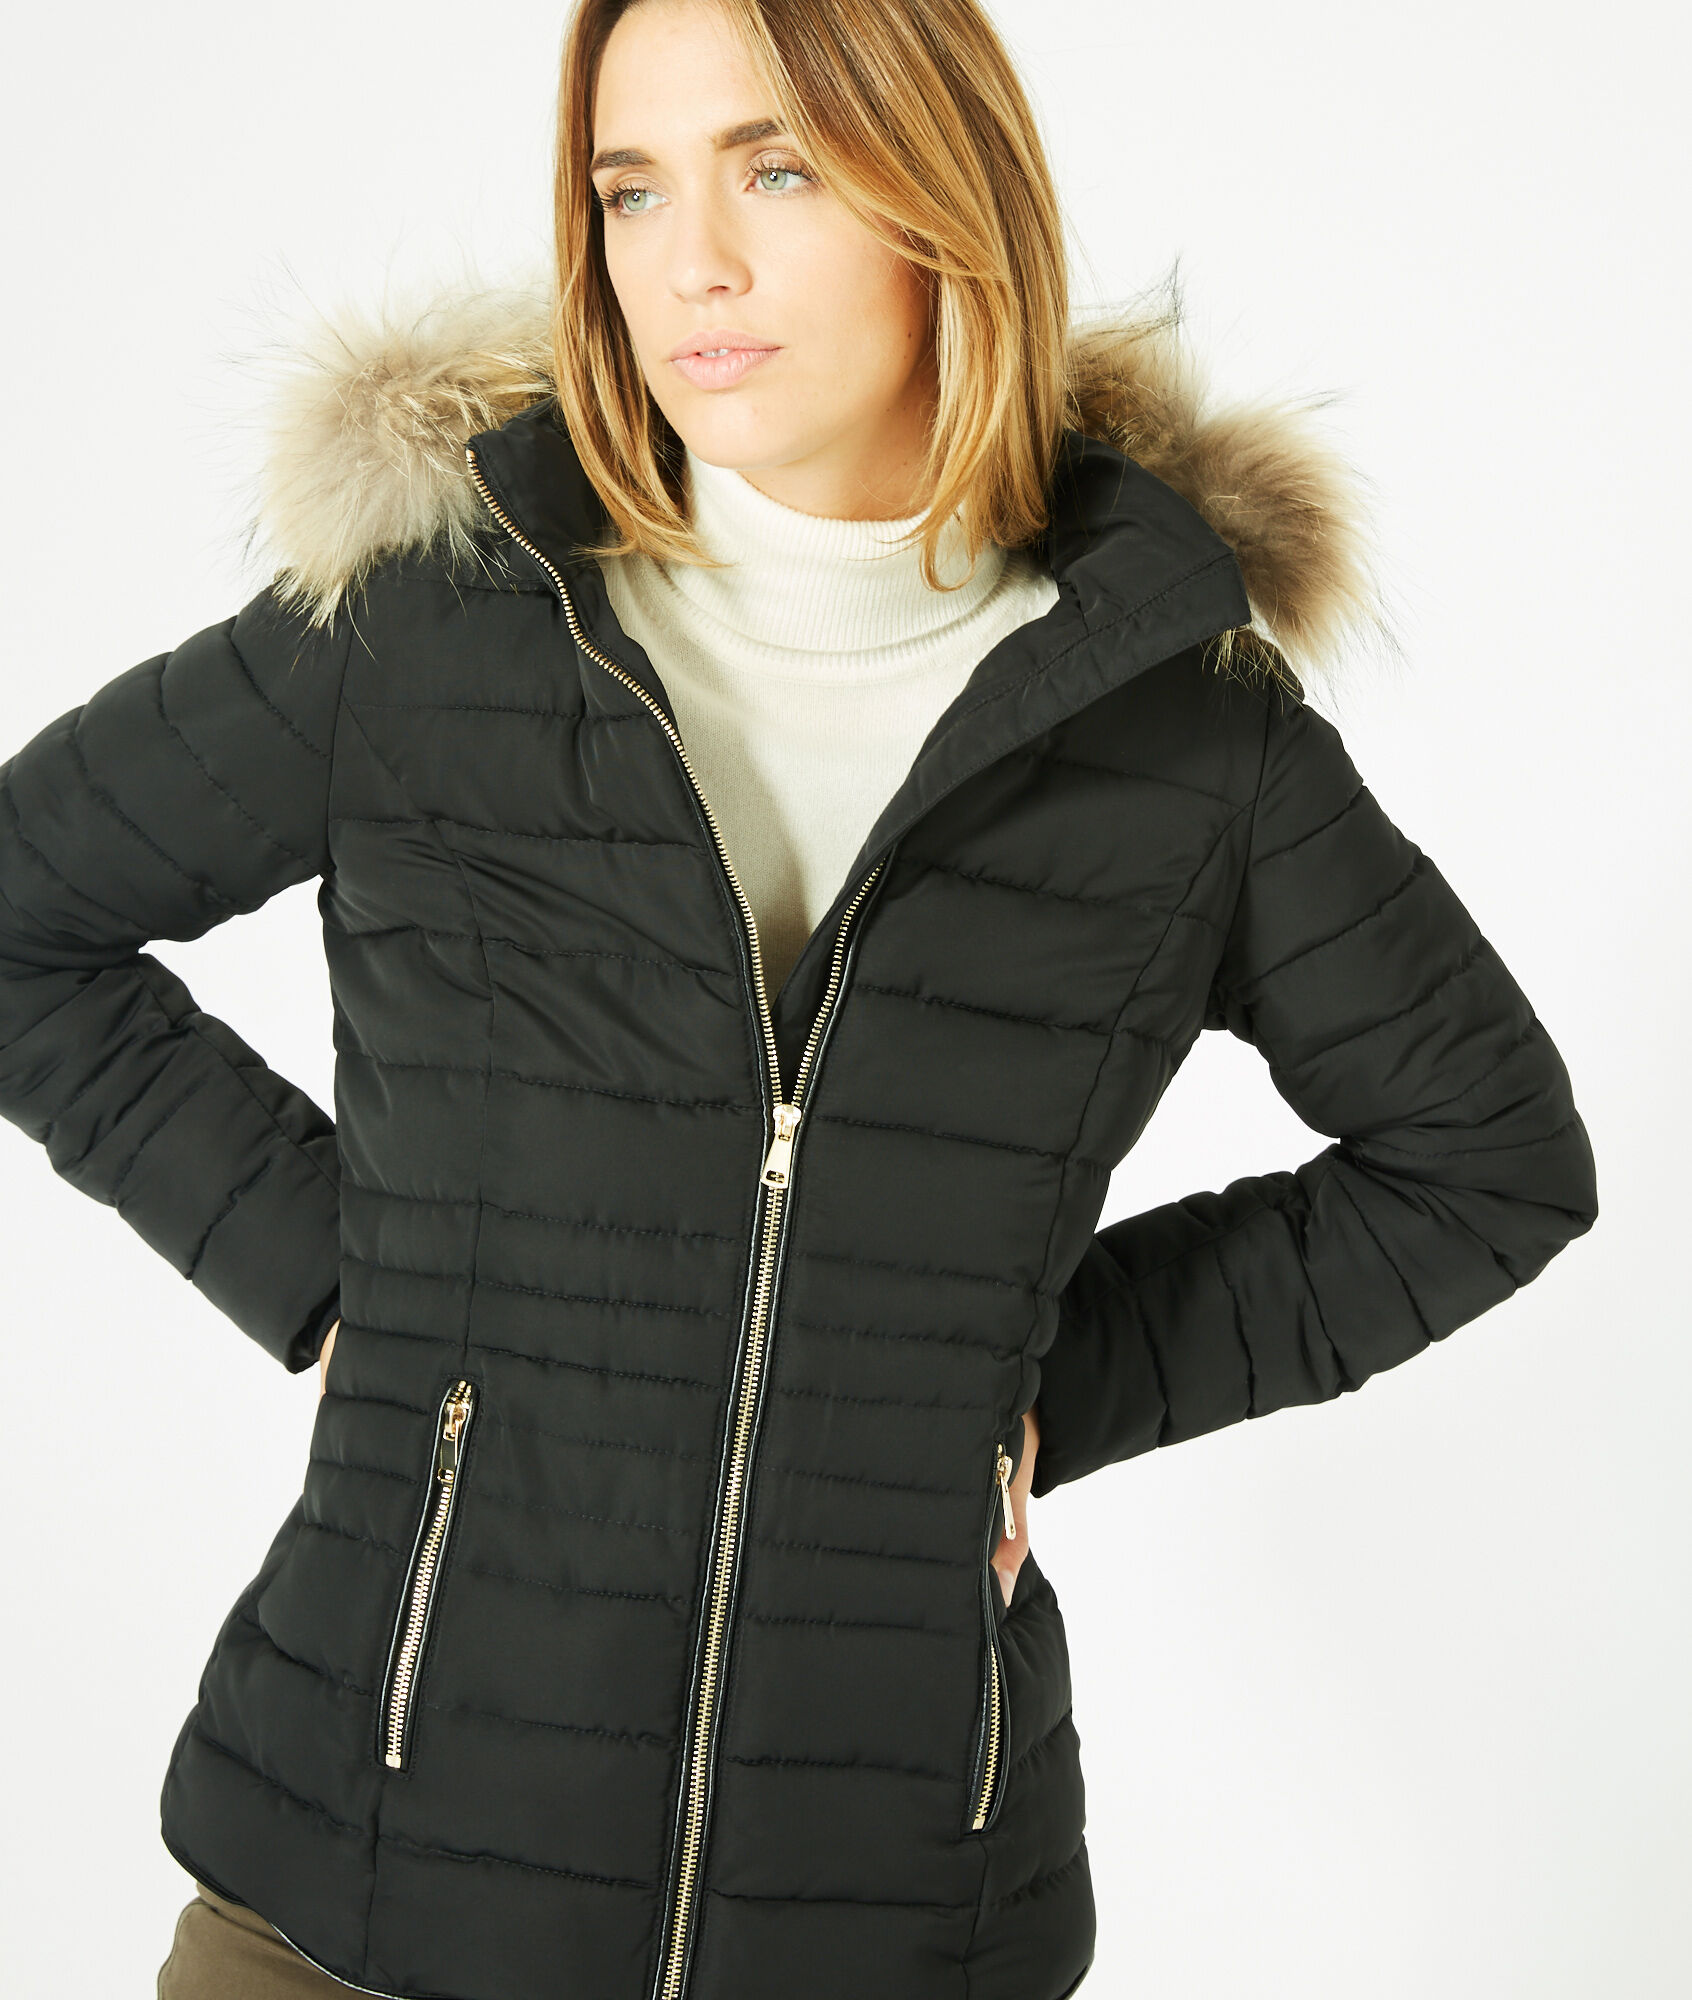 Rosie short black puffer jacket with a hood - 123